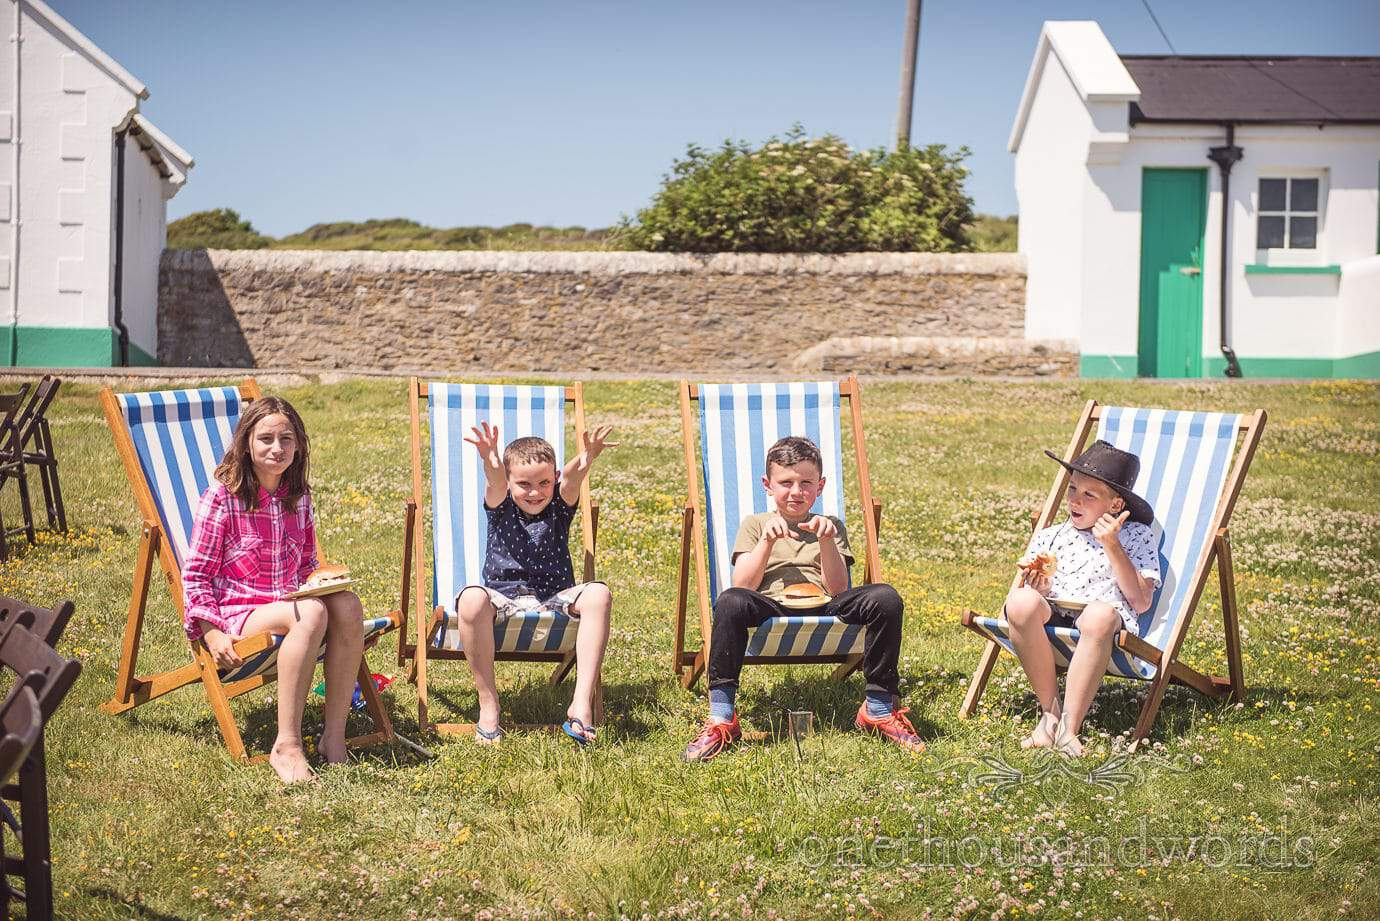 Swanage Wedding Photographers capture child wedding guests in garden deck chairs